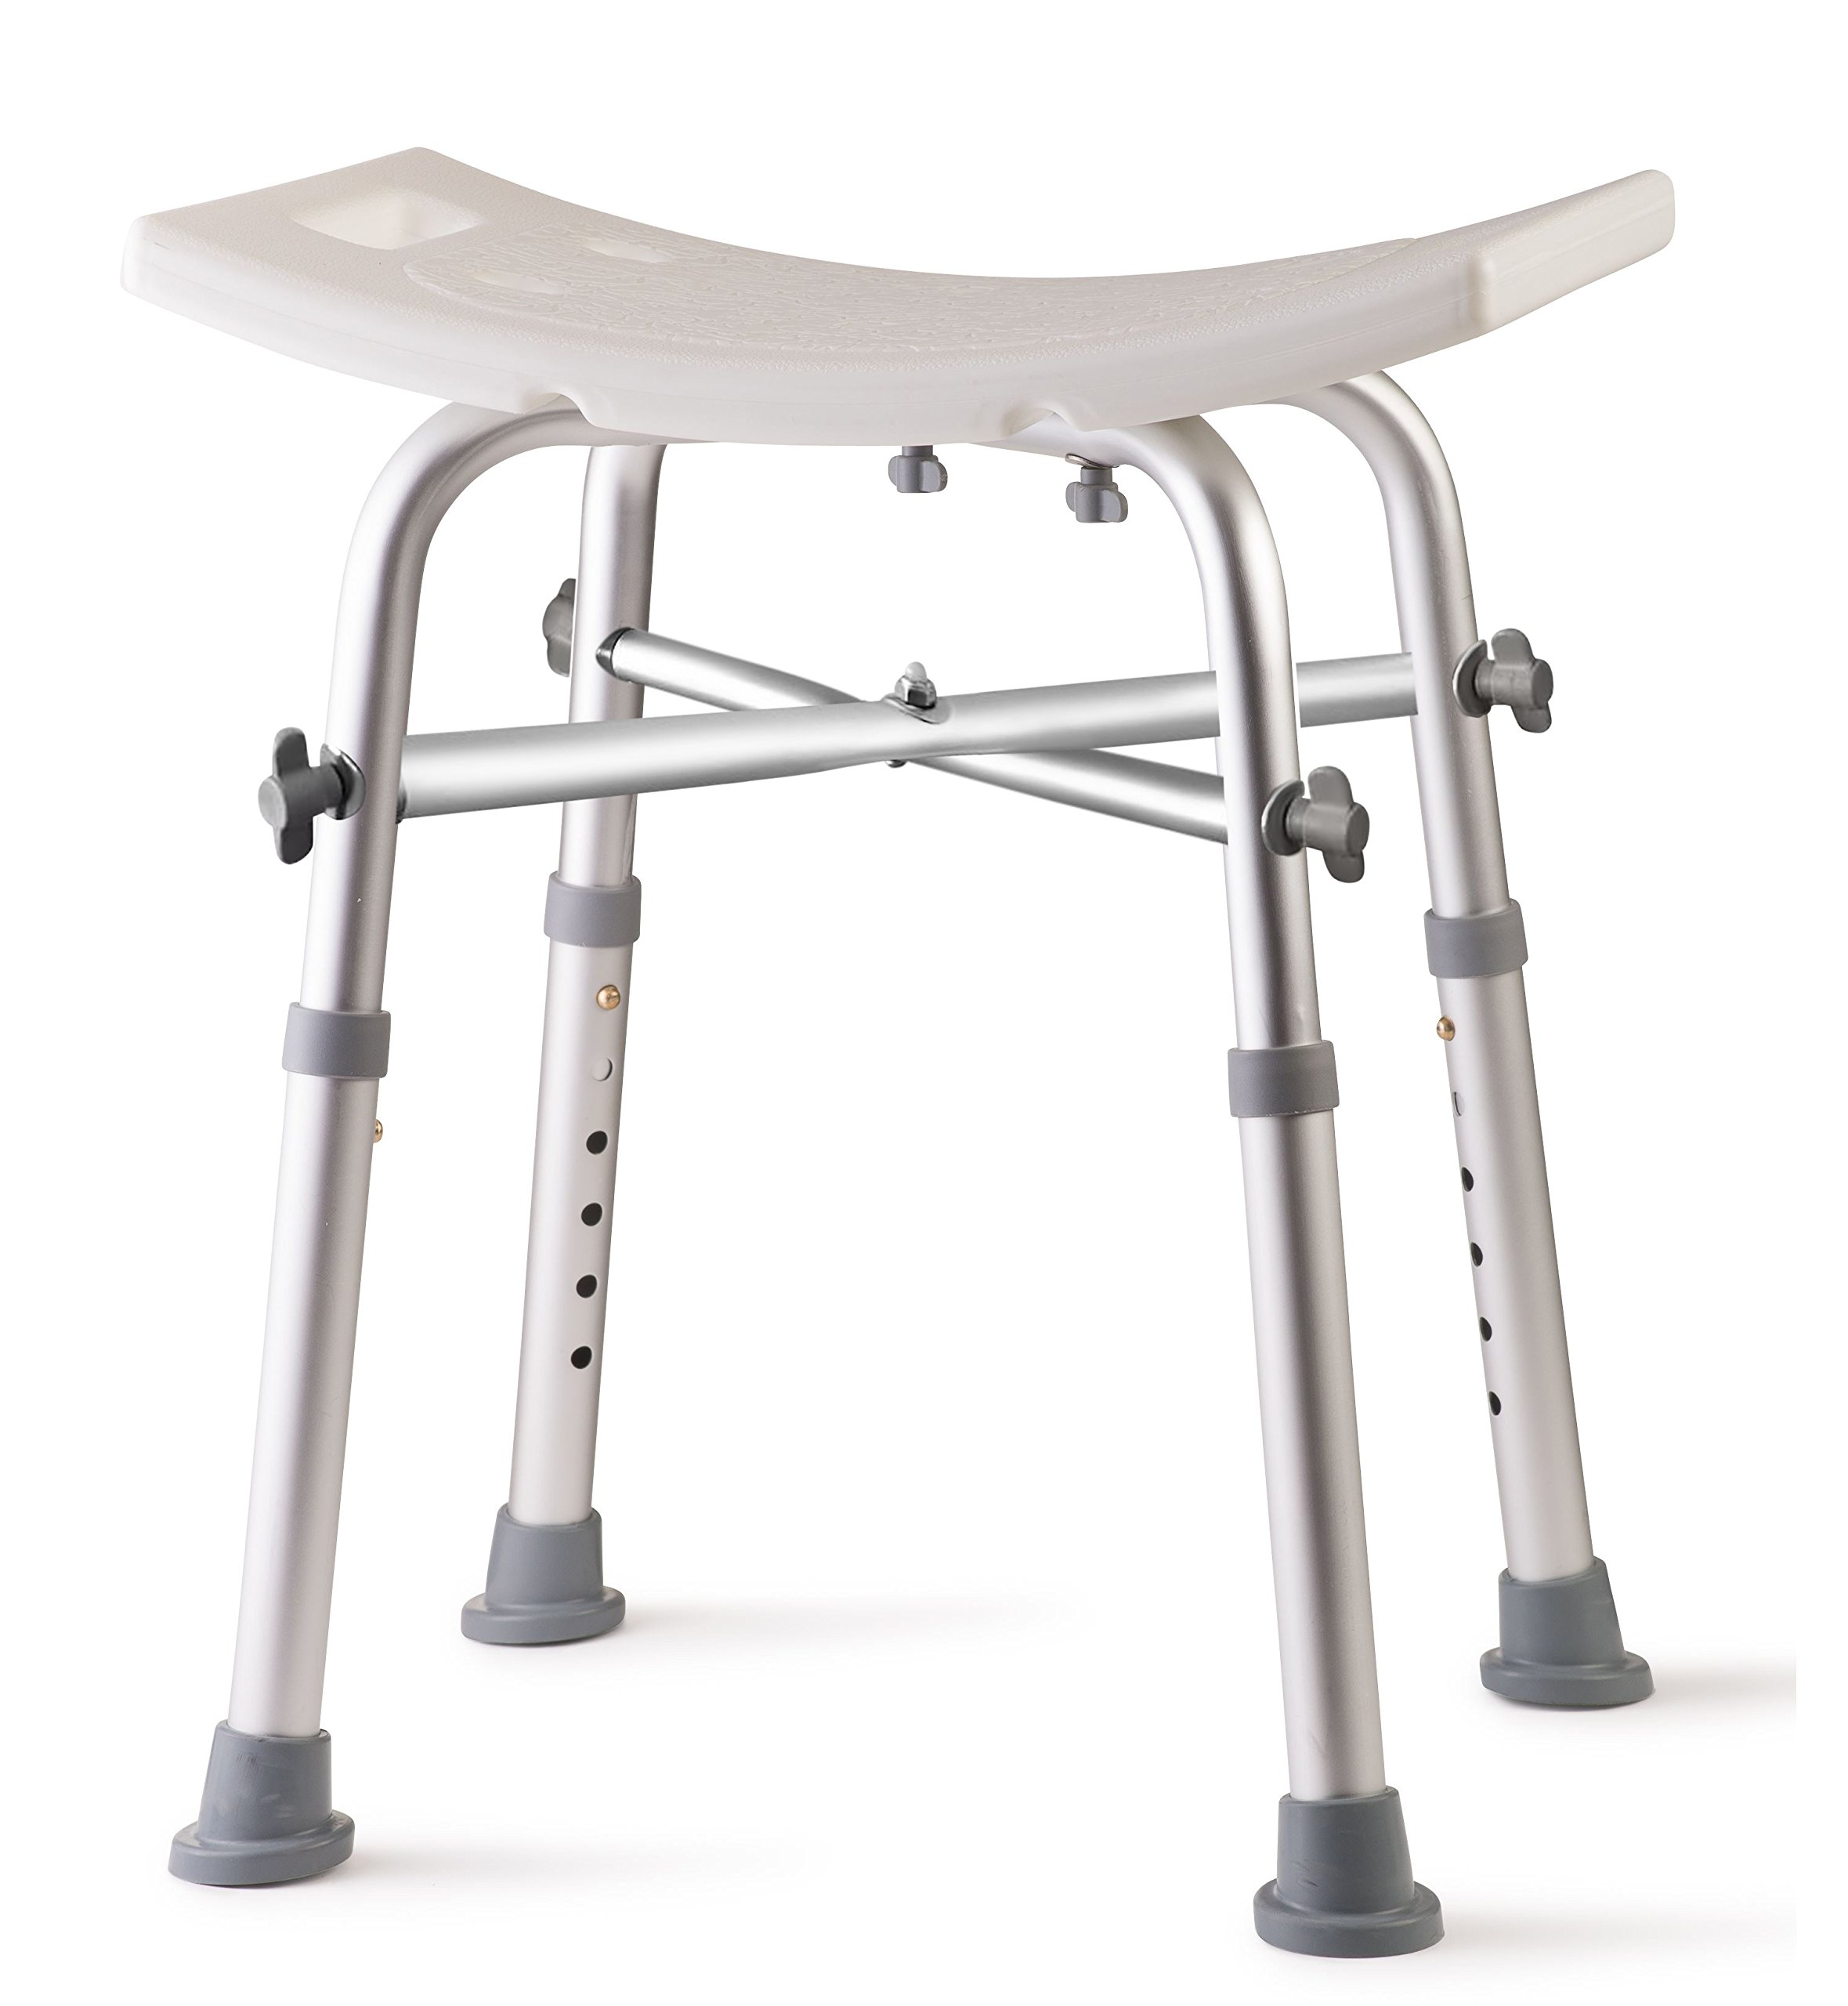 Dr Kay's Adjustable Height Bath and Shower Chair Top Rated Shower Bench